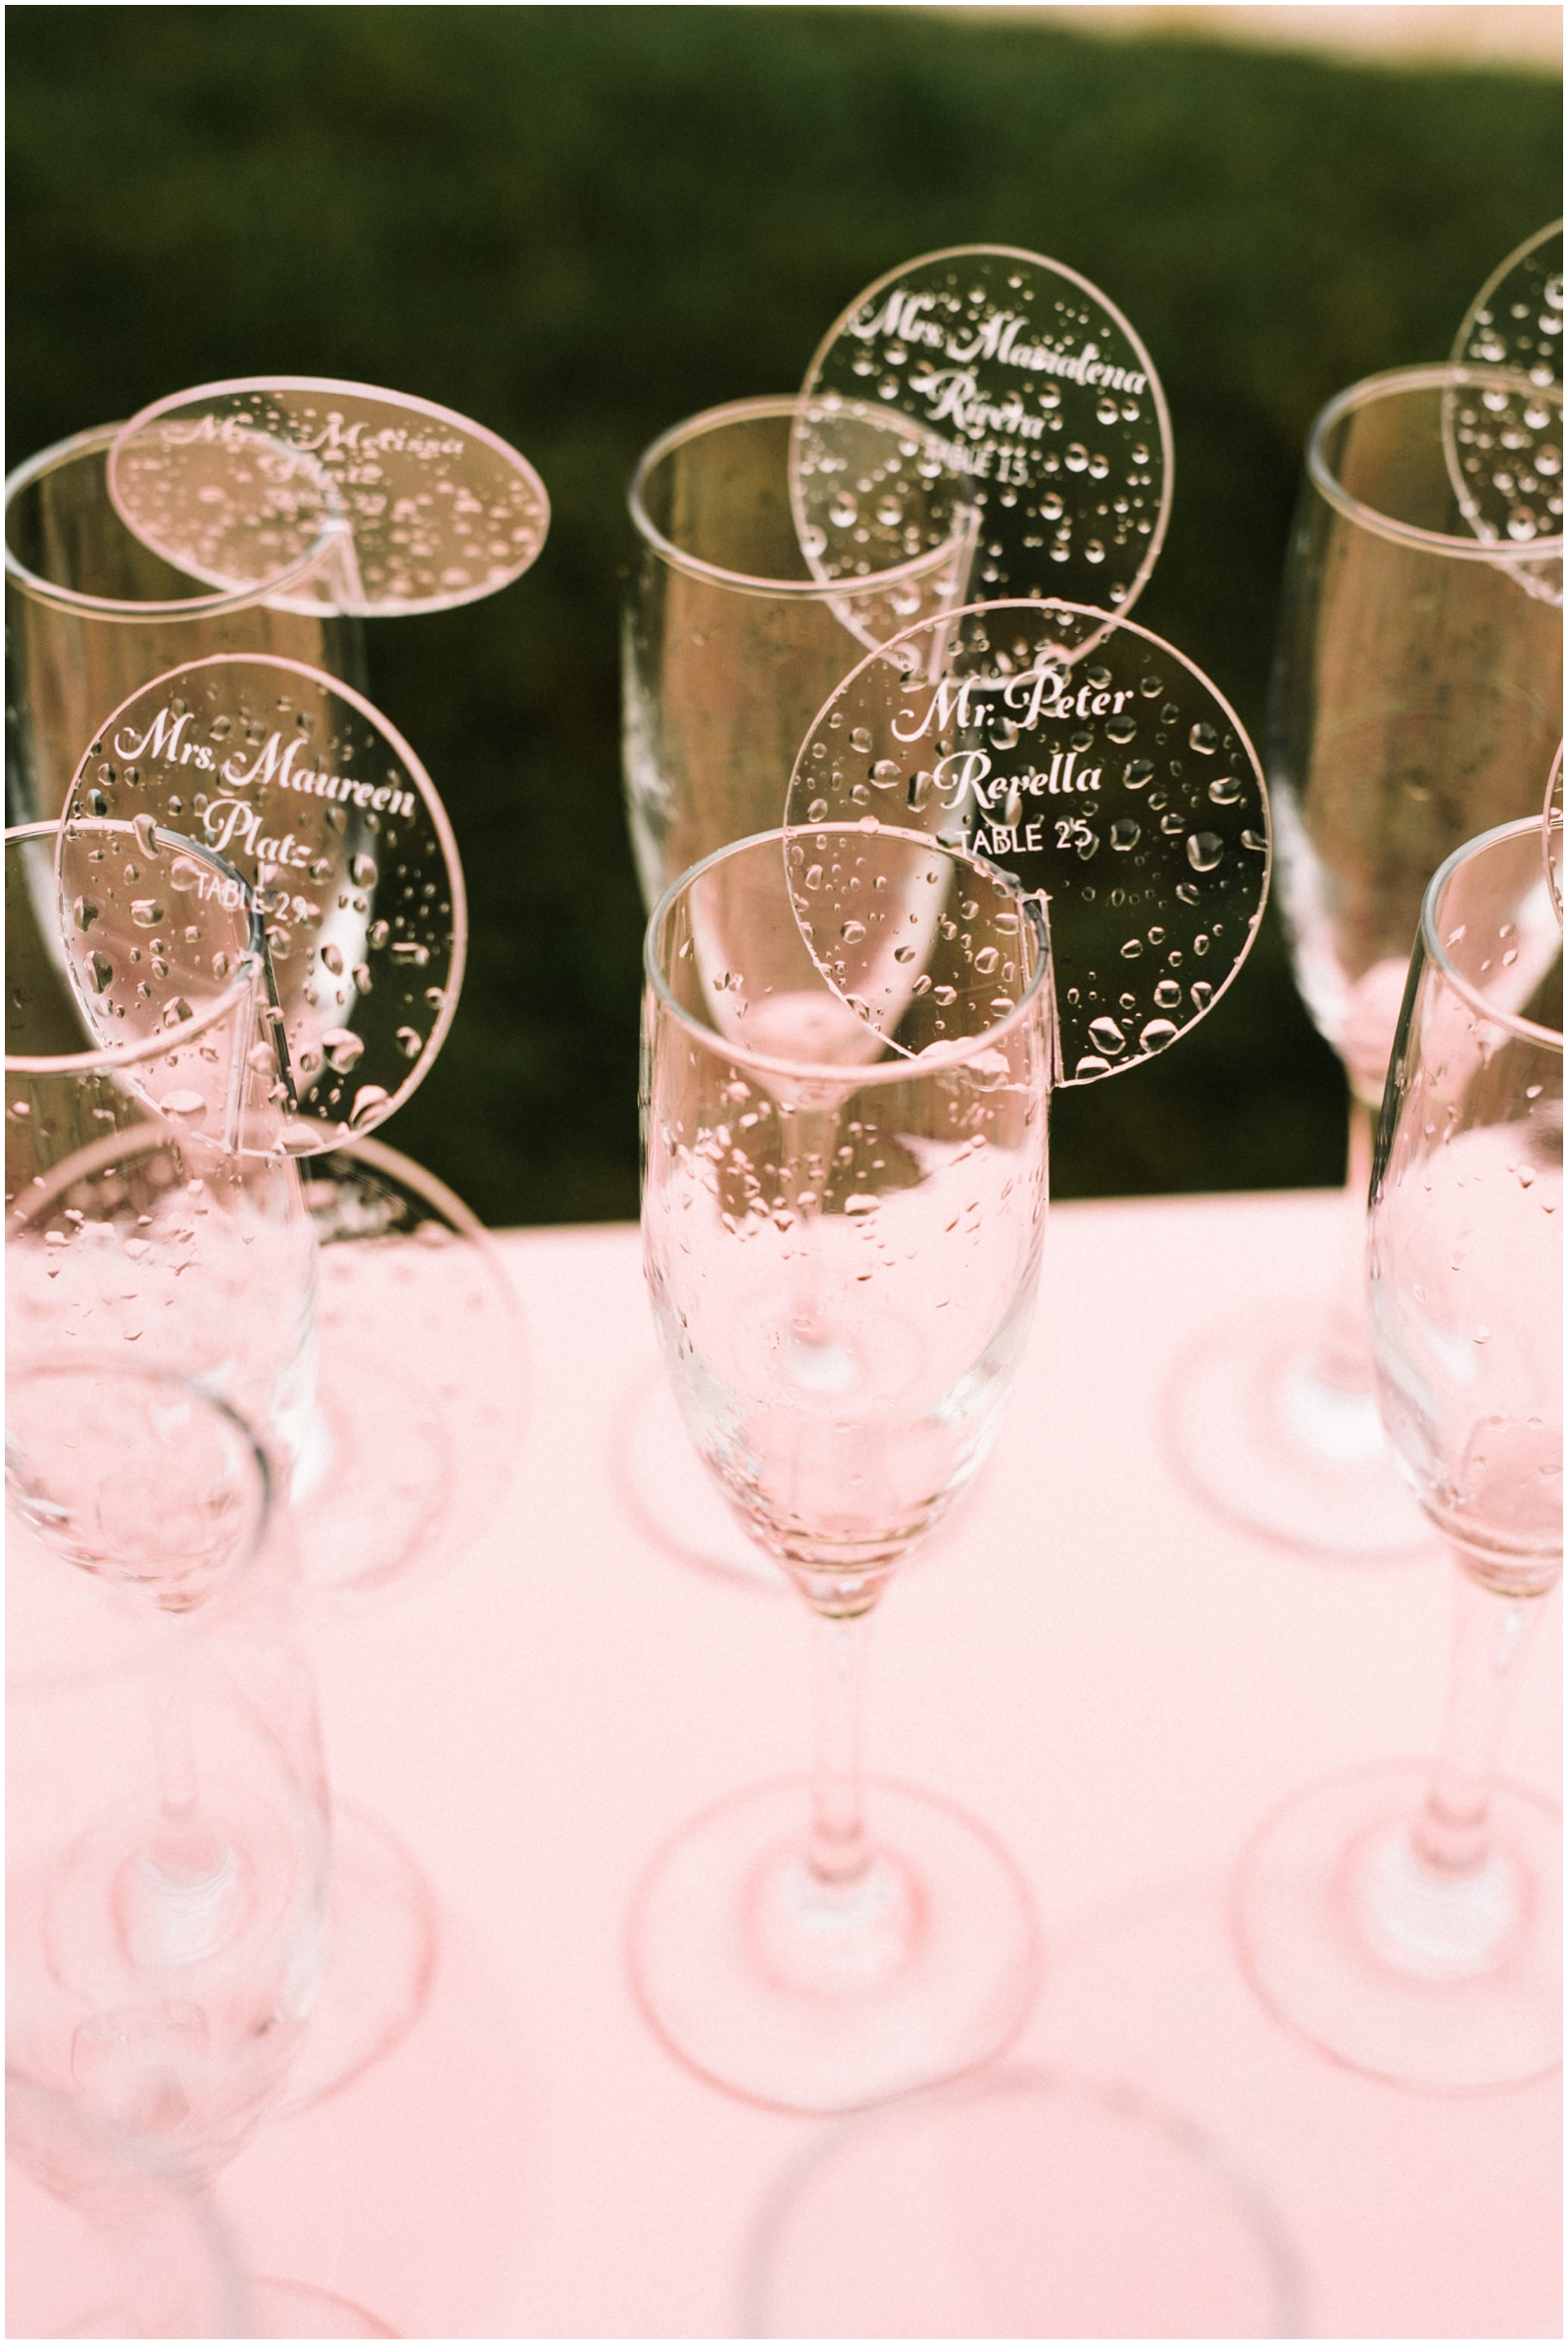 Champagne glasses with table signs